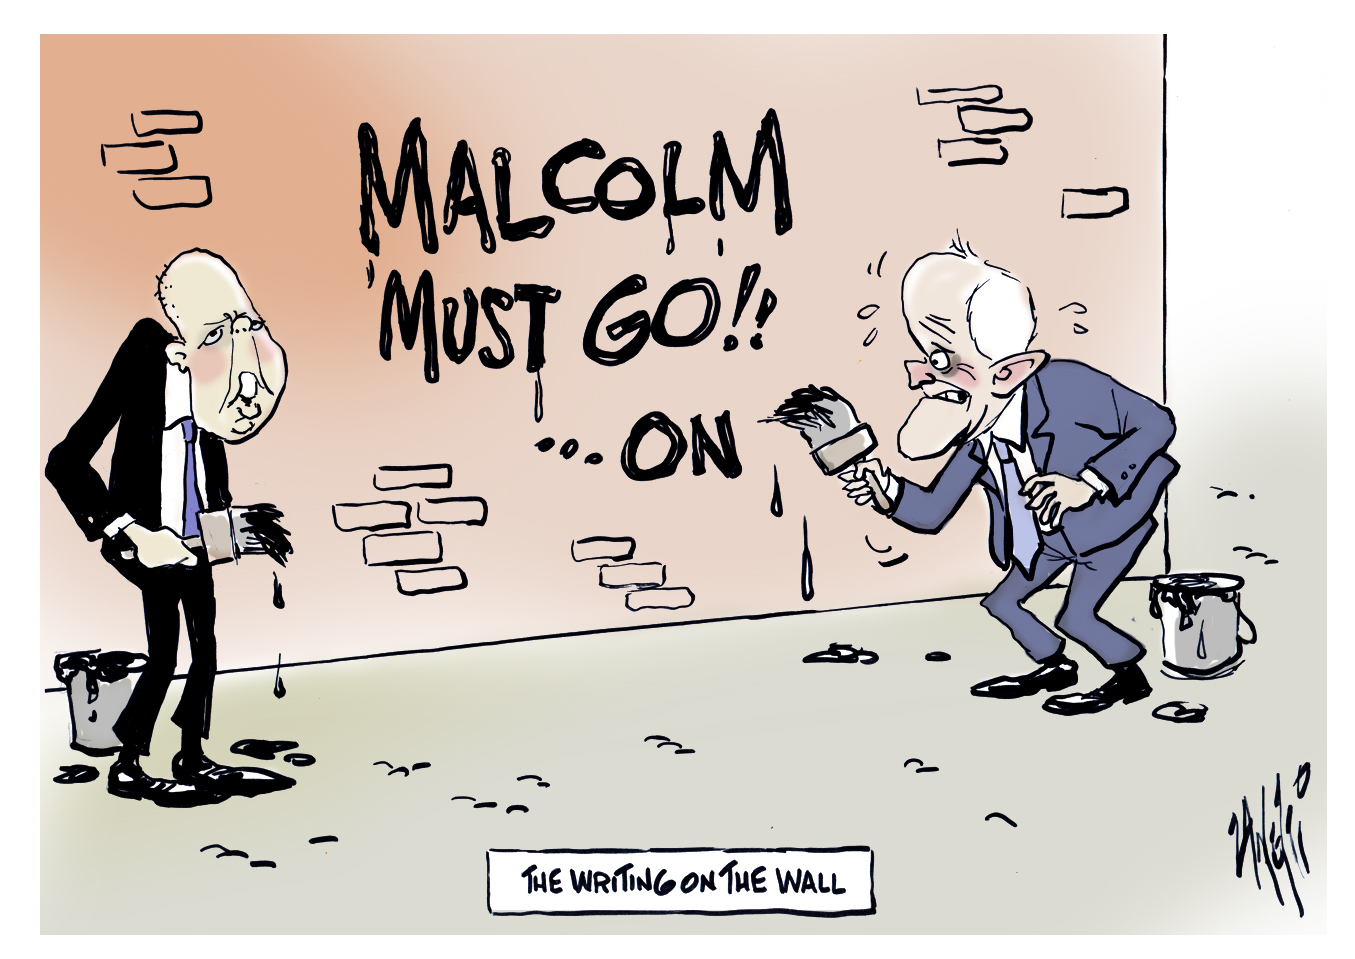 Macolm Turnbull Second Challenge